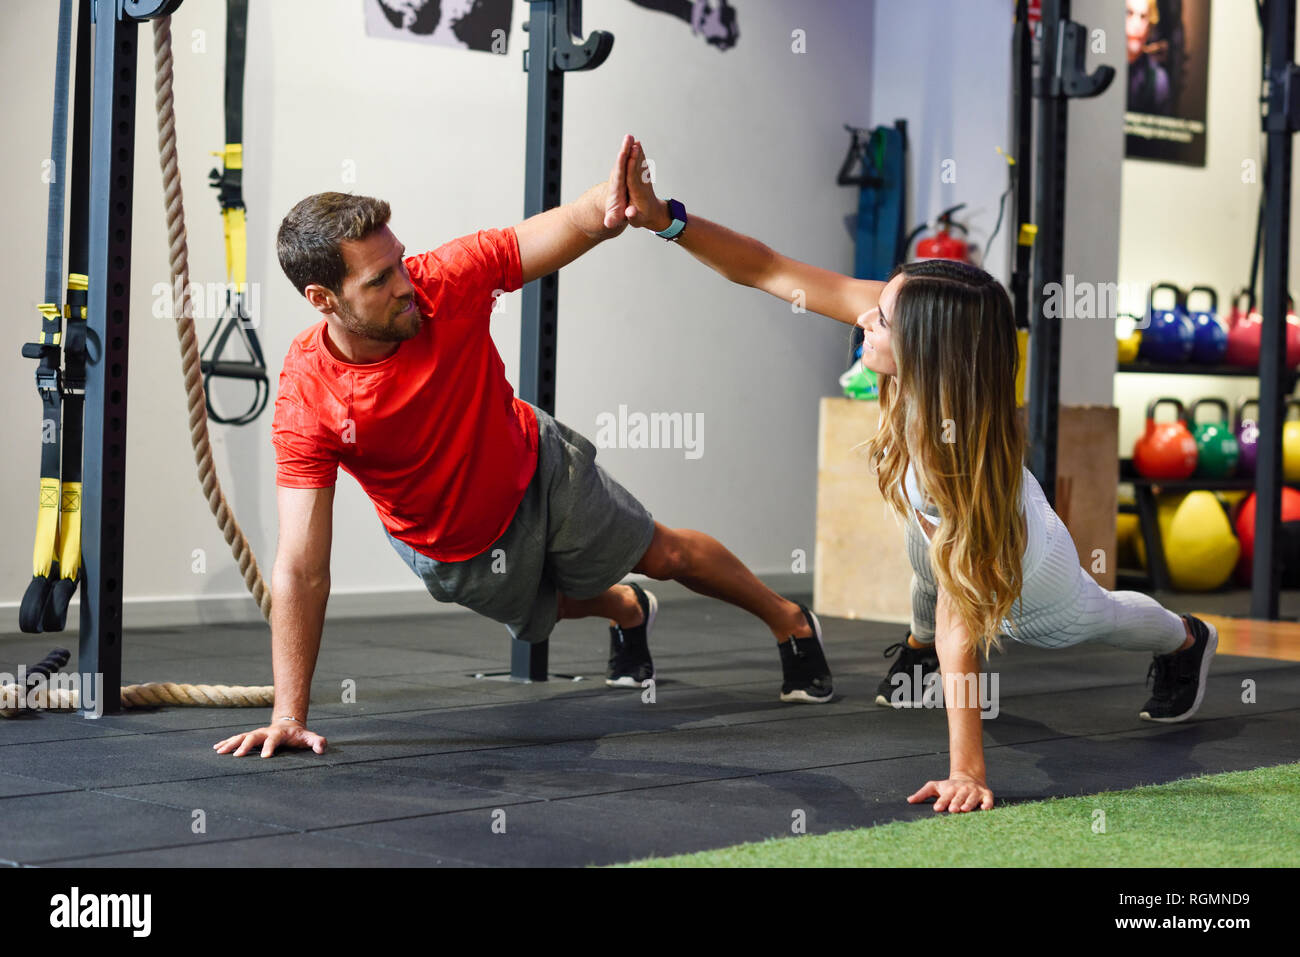 Couple exercising side plank with high-five in a gym - Stock Image